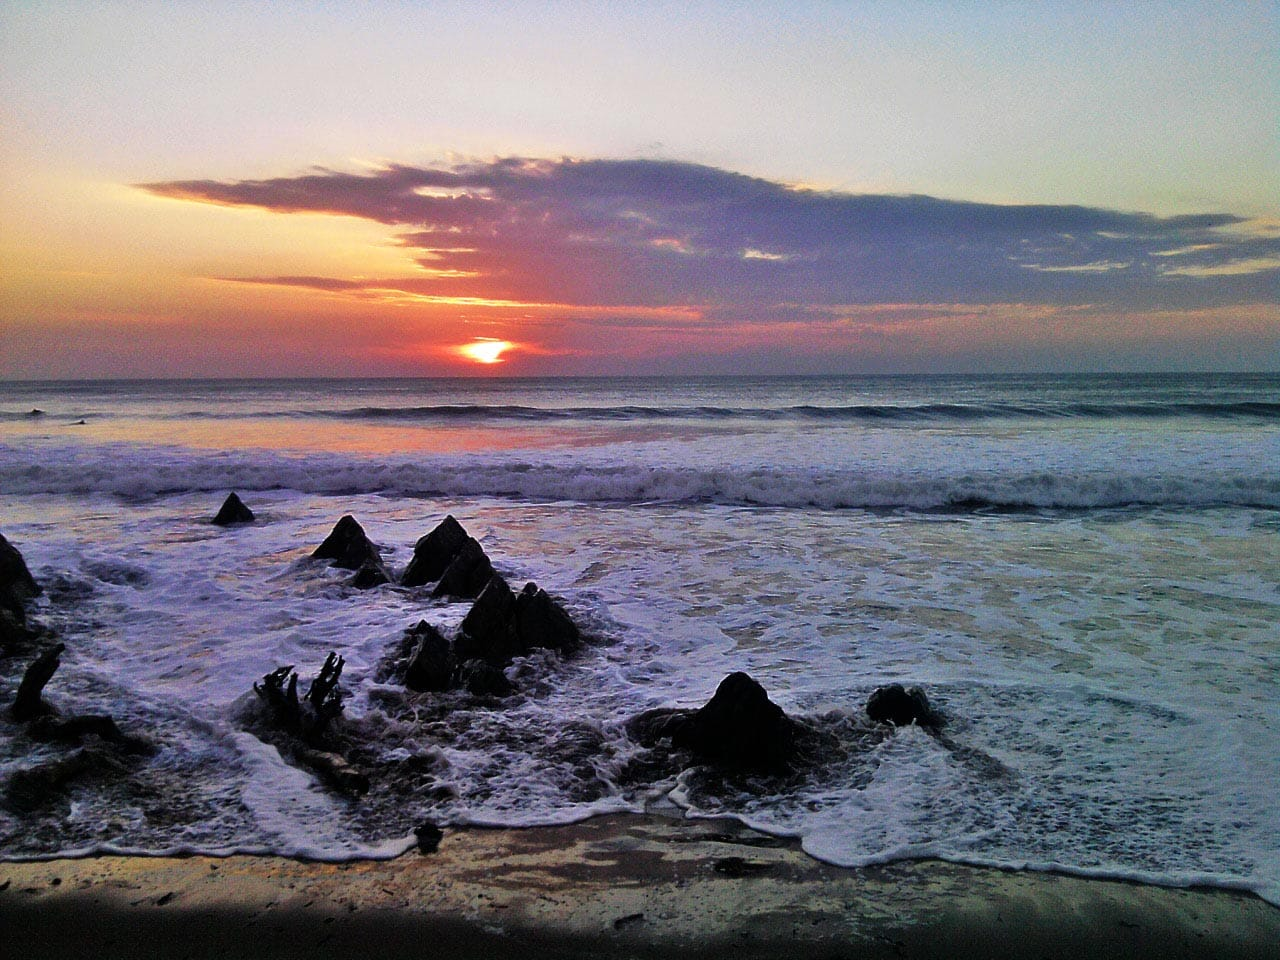 Woolacombe beach-image credits Amy Paternoster